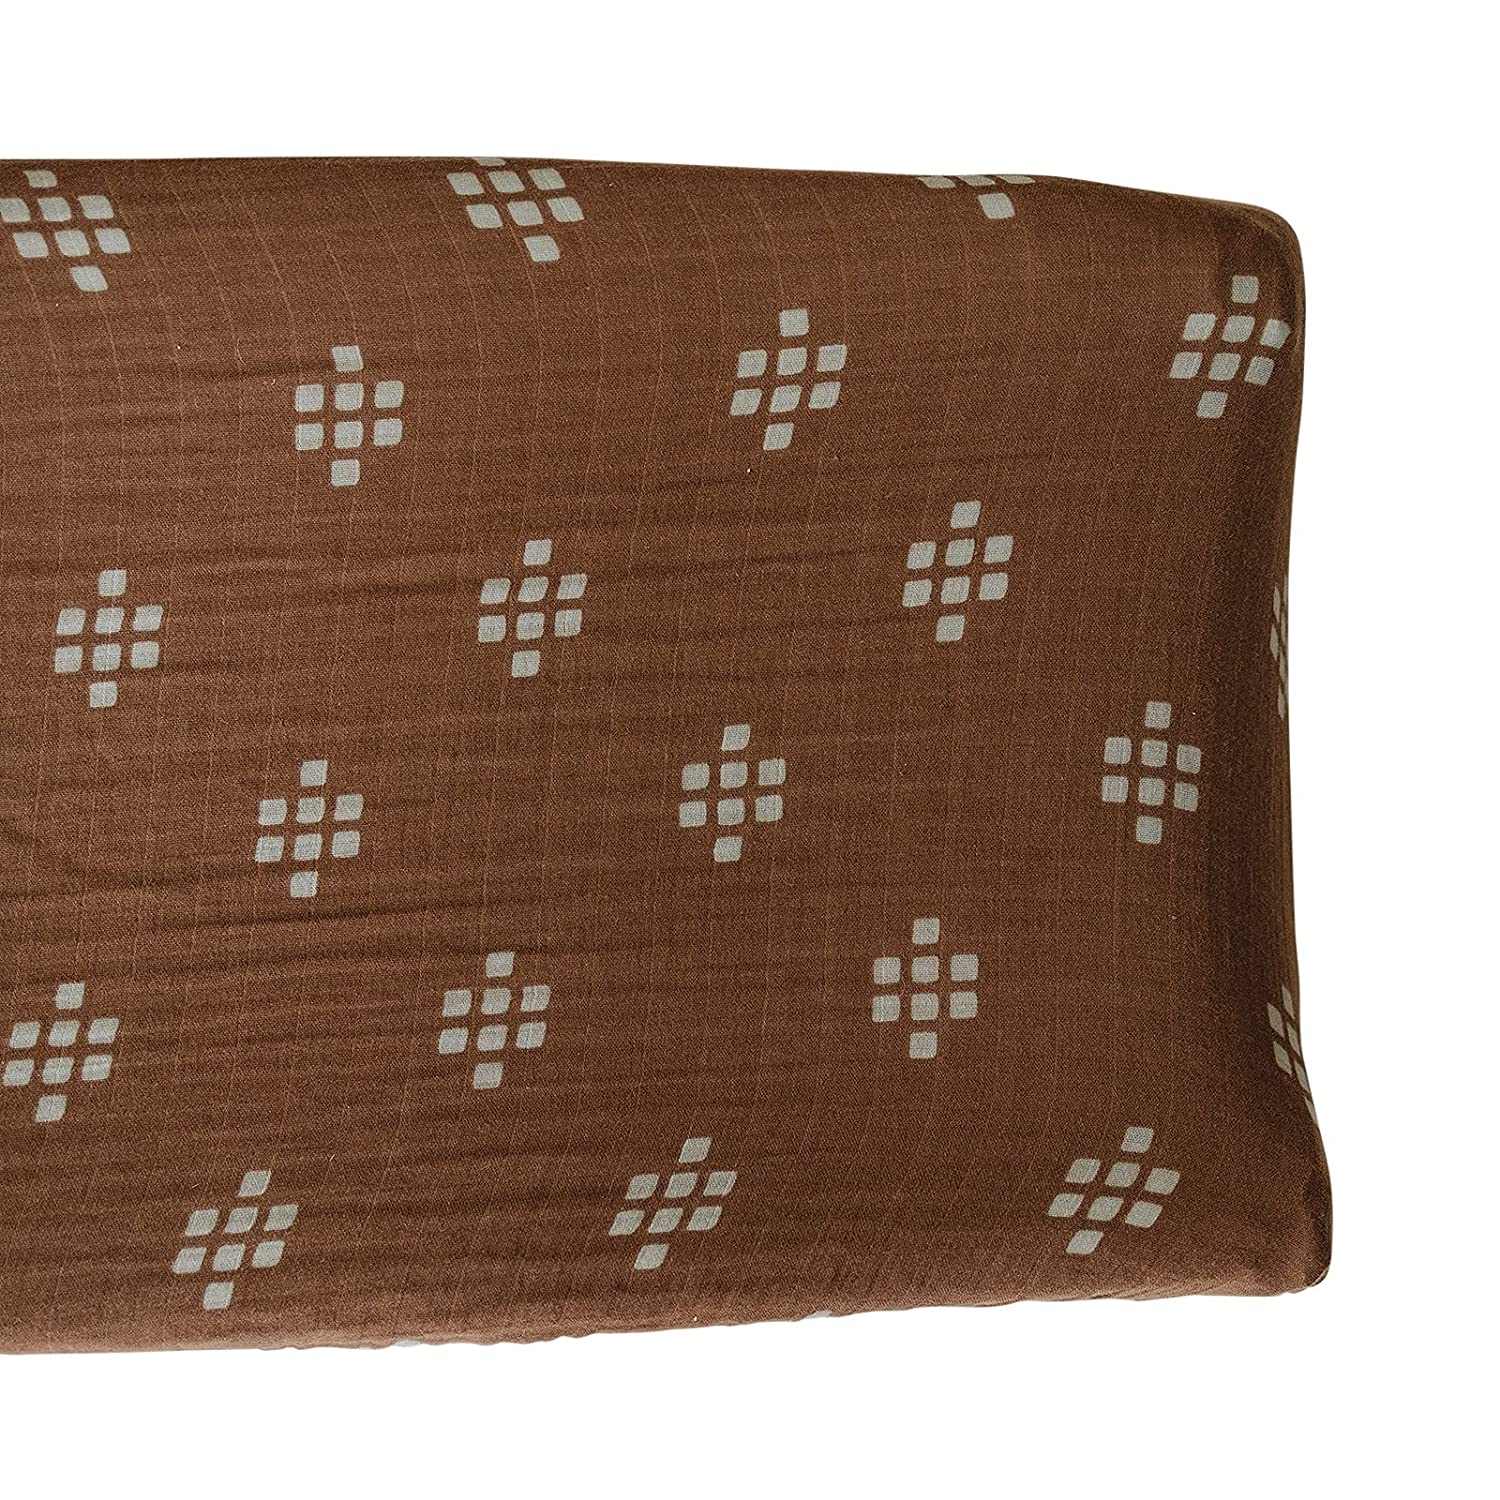 Mebie Baby Changing Pad Cover (Chestnut Textiles)